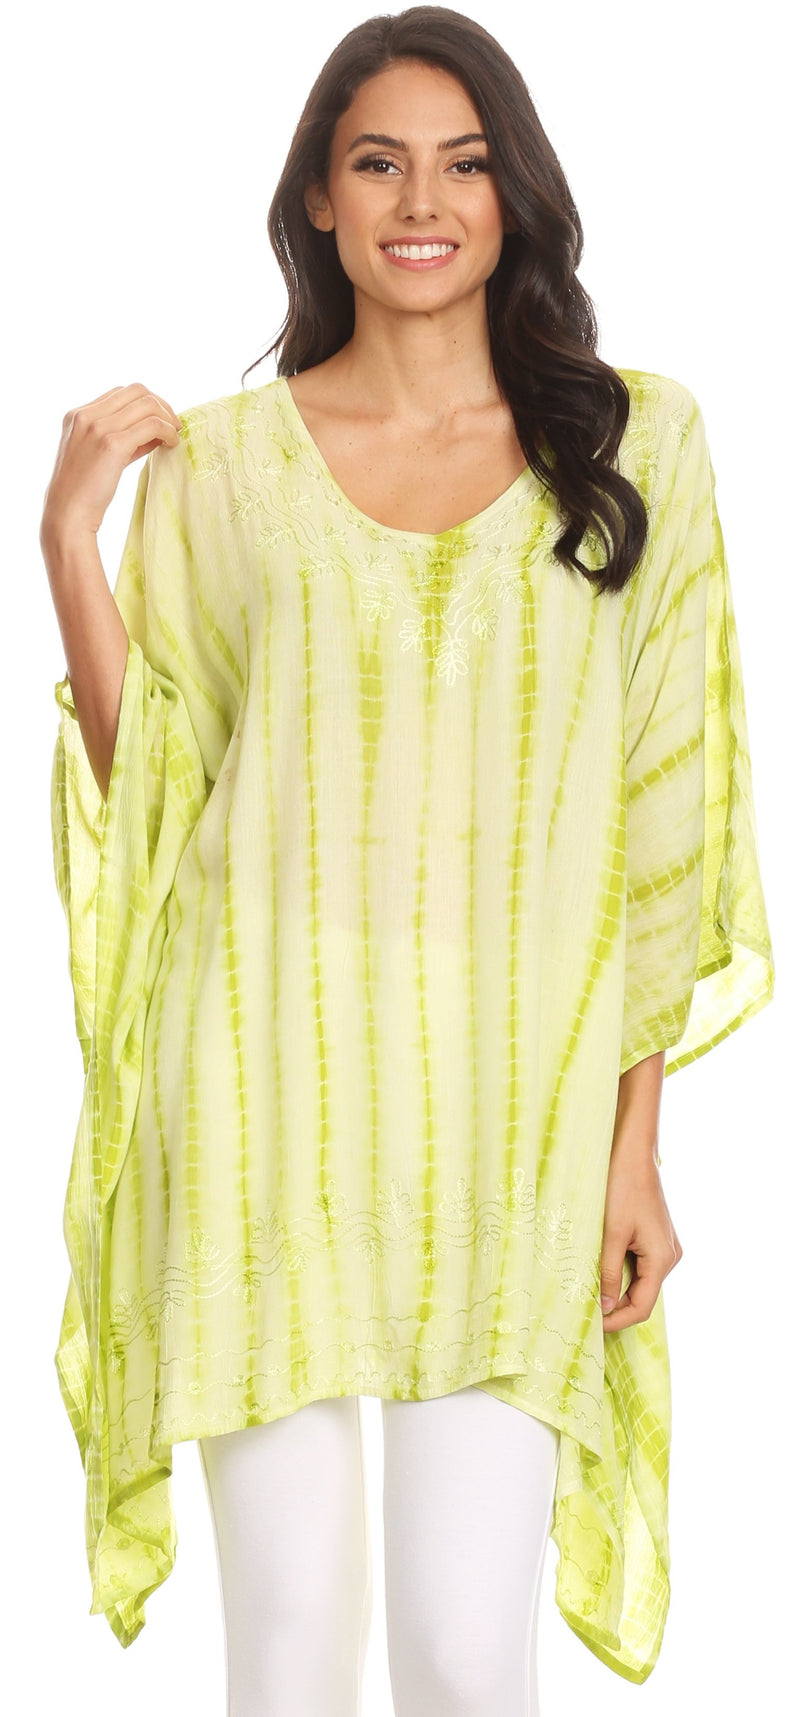 Sakkas Wren Lightweight Circle Poncho Top Blouse With Detailed Embroidery